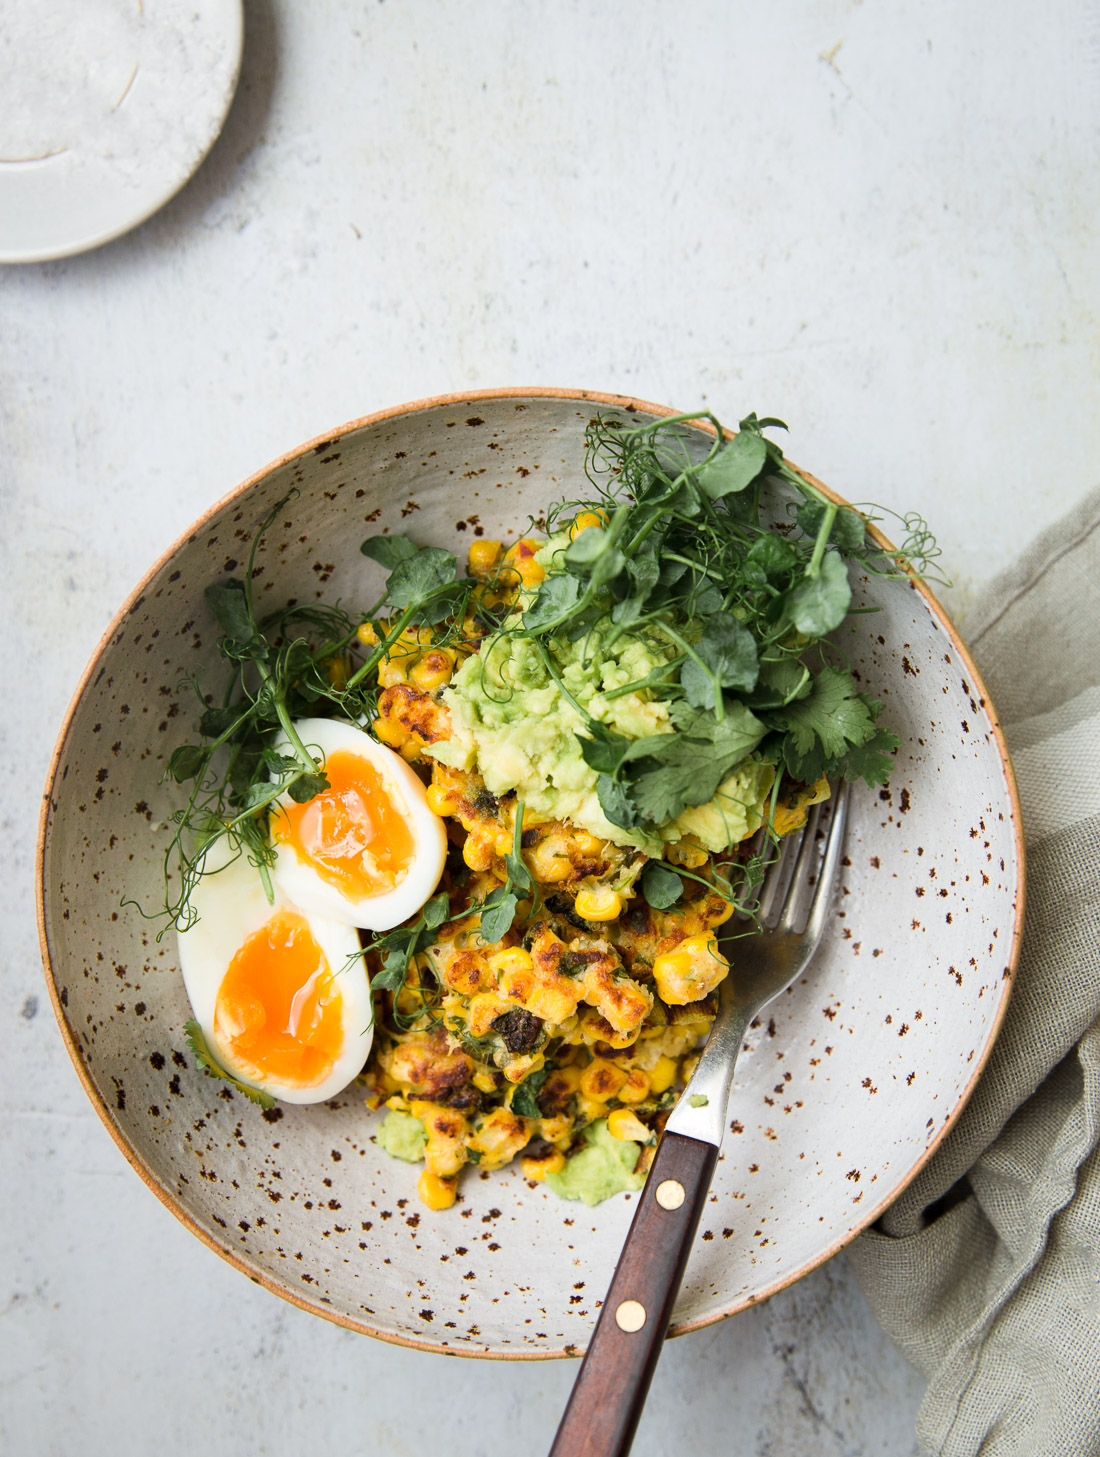 Chilli Sweetcorn Fritters, Avocado, Egg